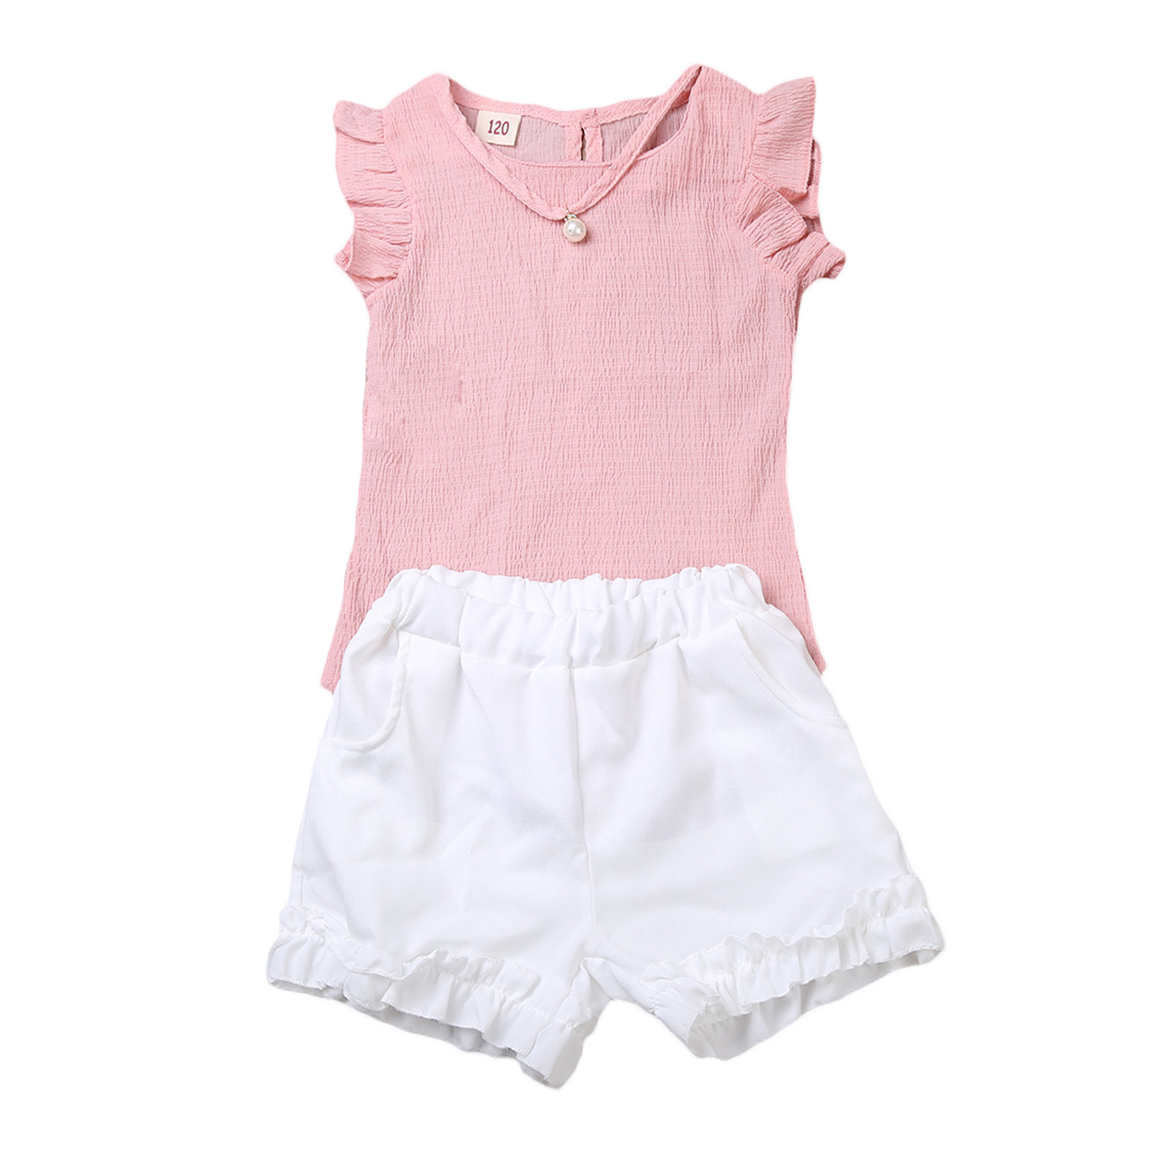 2pcs Children Kids Baby Girls Outfit Sets Chiffon T-shirt Tops Shorts Sleeveless Summer Outfits Suit Cute Girls Clothes Sets 3pcs outfit infantil girls clothes toddler baby girl plaid ruffled tops kids girls denim shorts cute headband summer outfits set